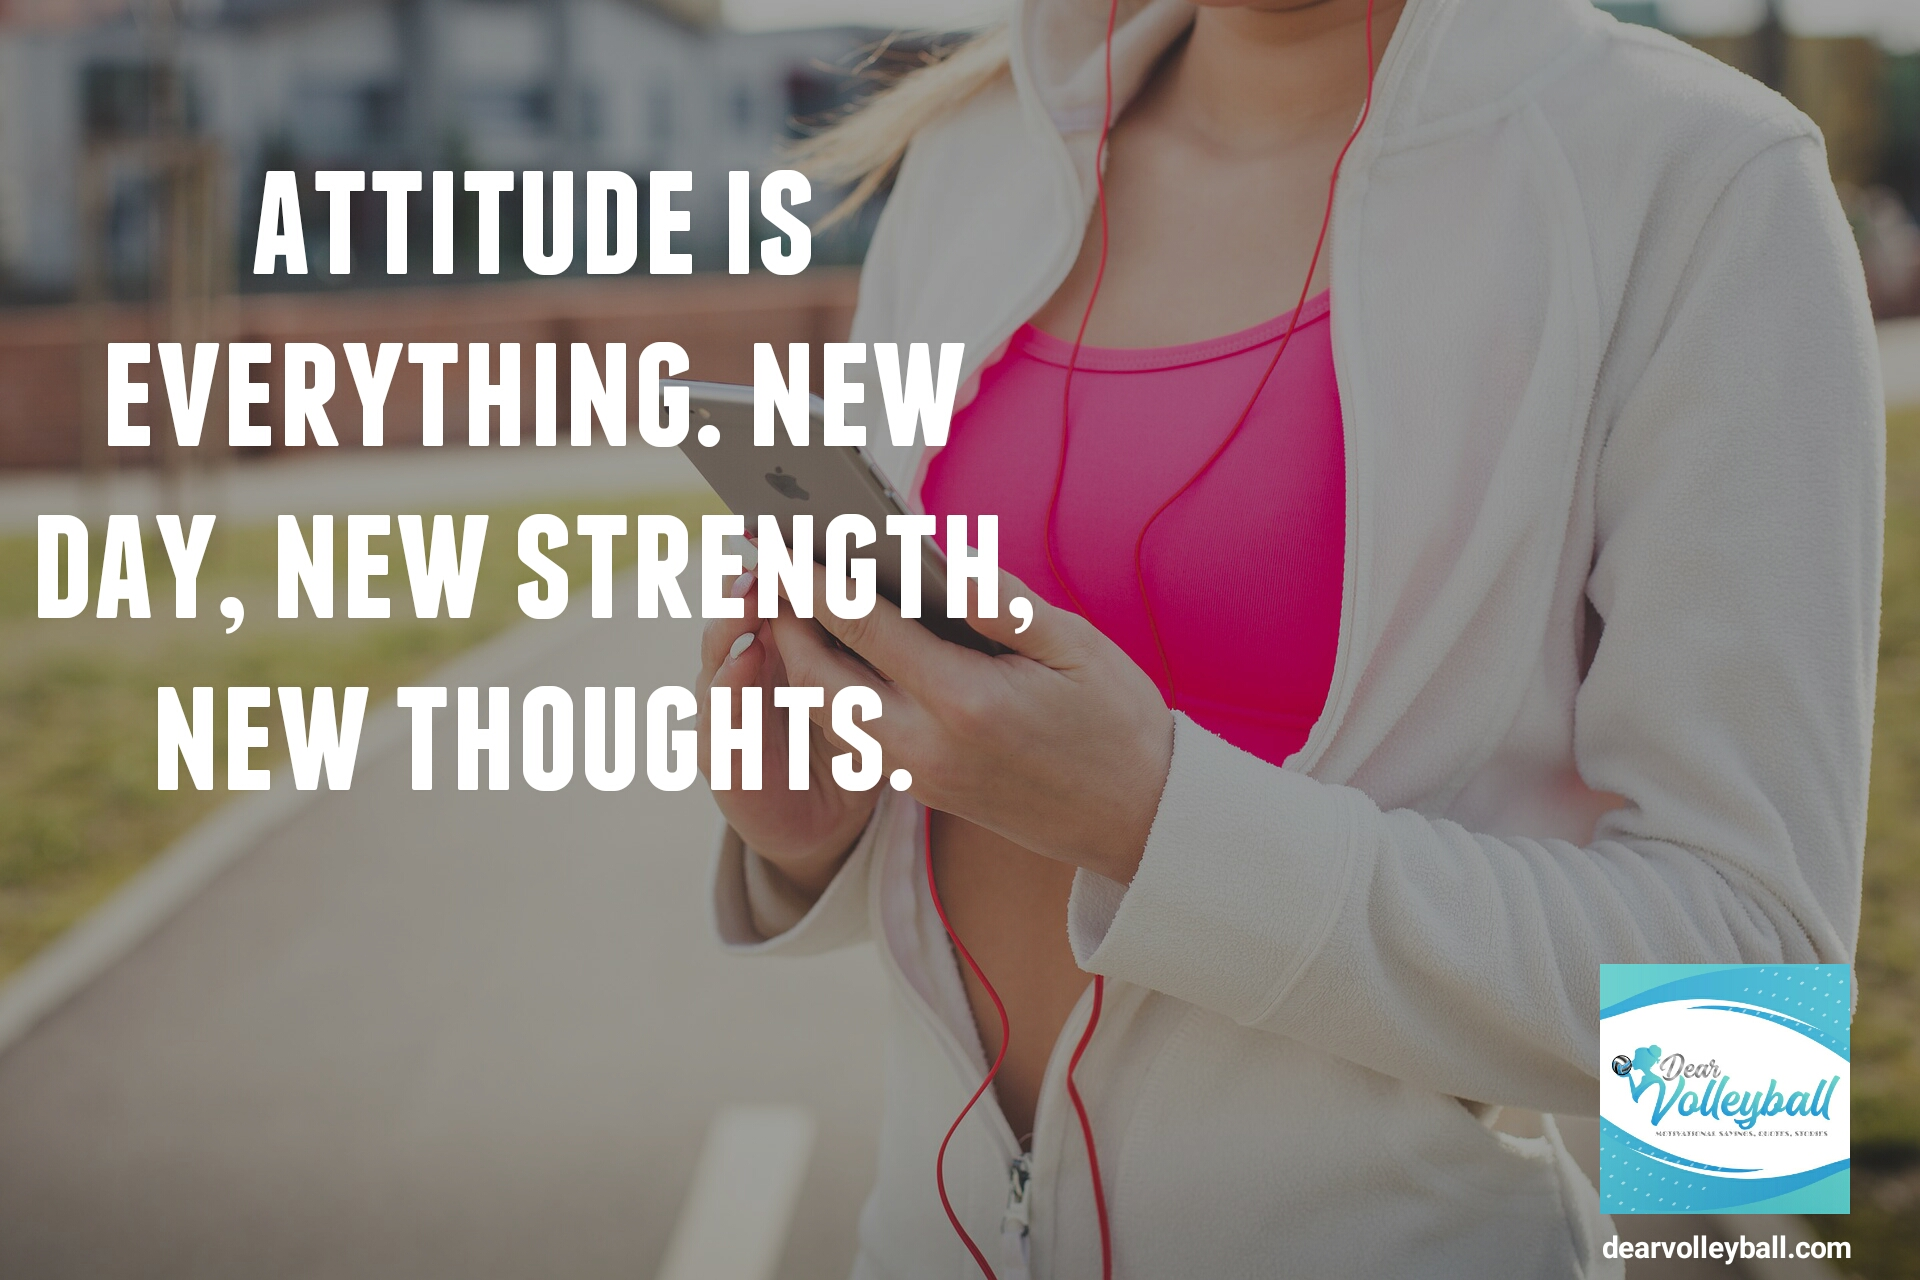 Attitude is everything new day new strength new thoughts and other encouragement quotes on dearVolleyball.com